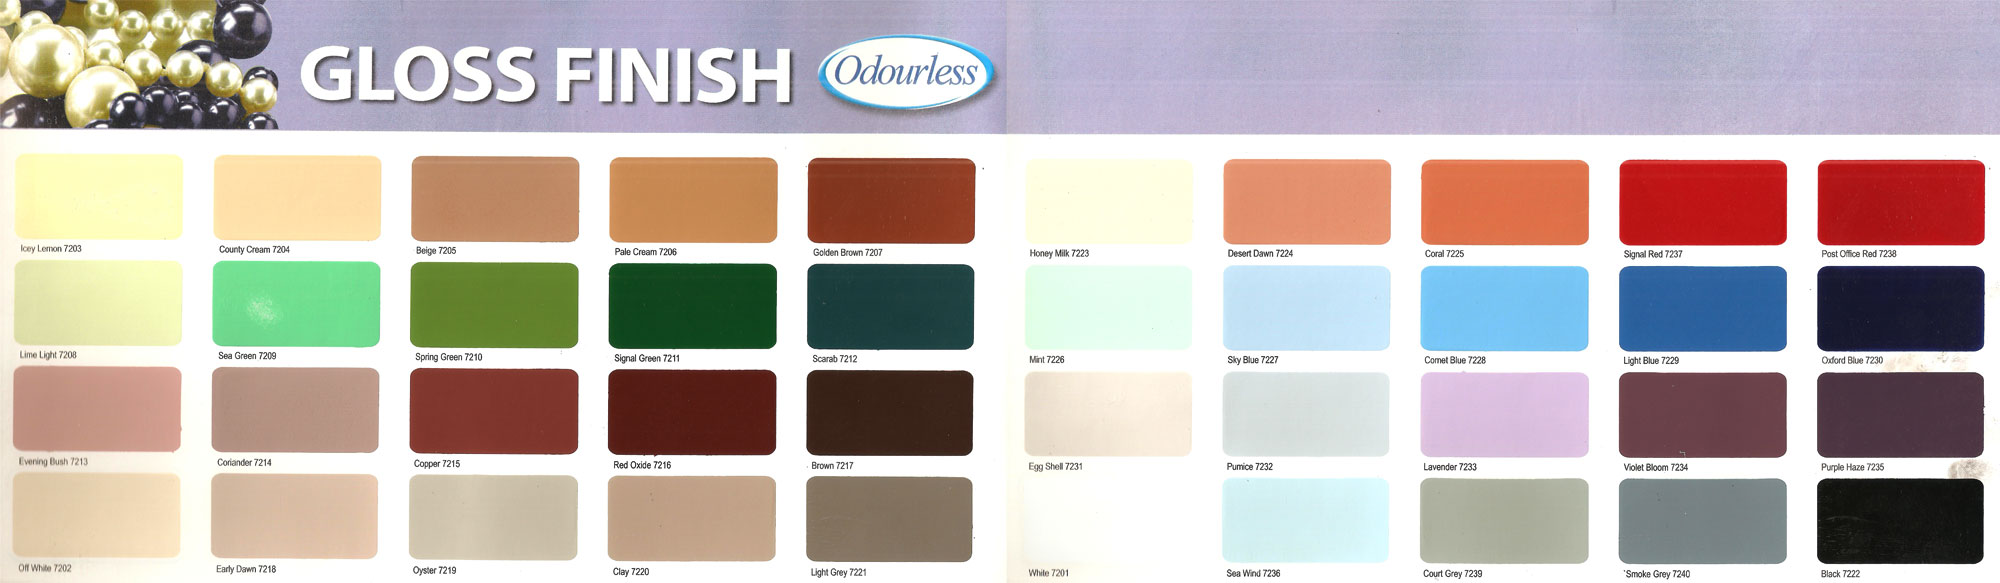 Asian paints wall distemper colour shades - Paints Shade Card Snowcem Paints  Shade Card Berger Paints